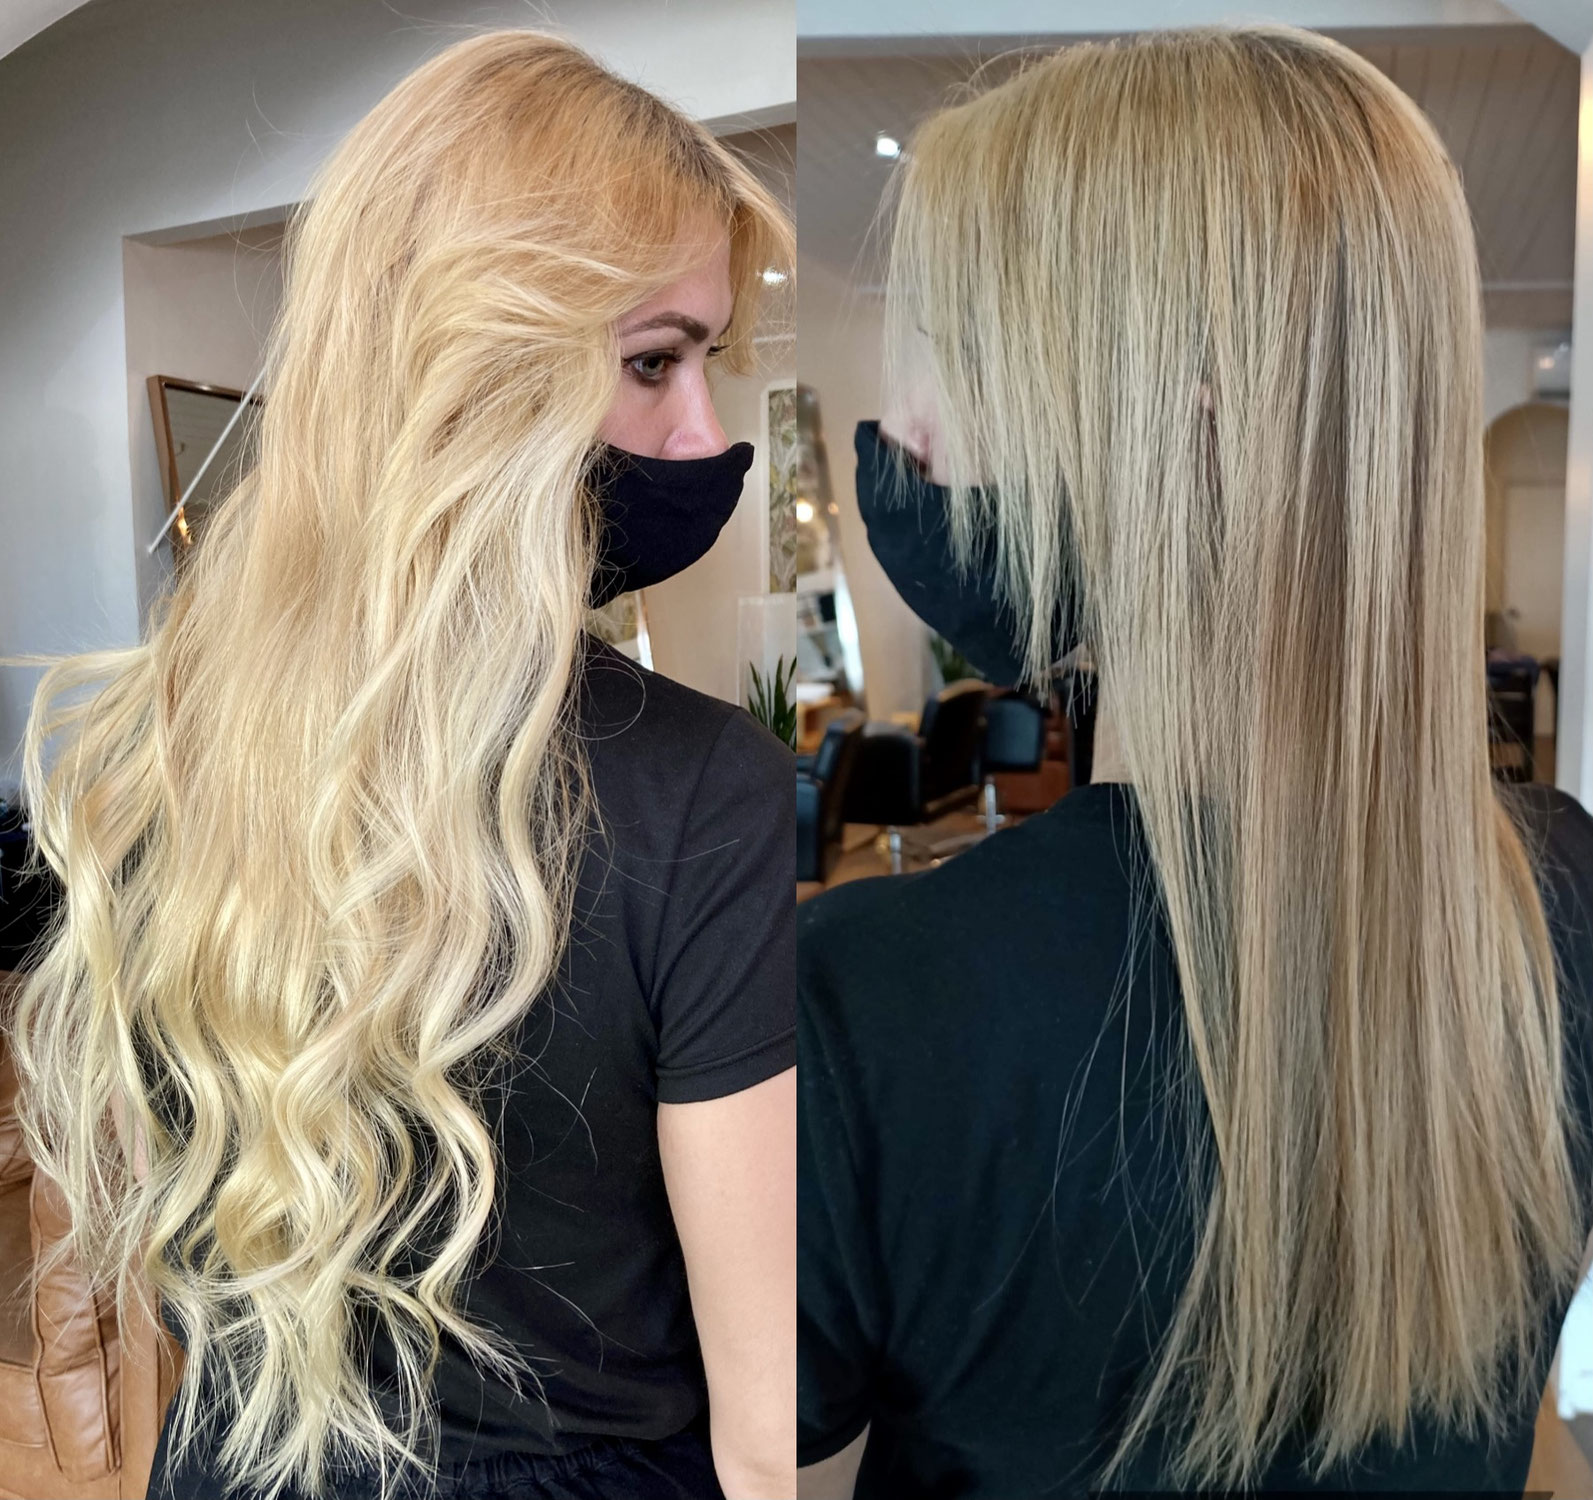 Are hair extensions right for you?